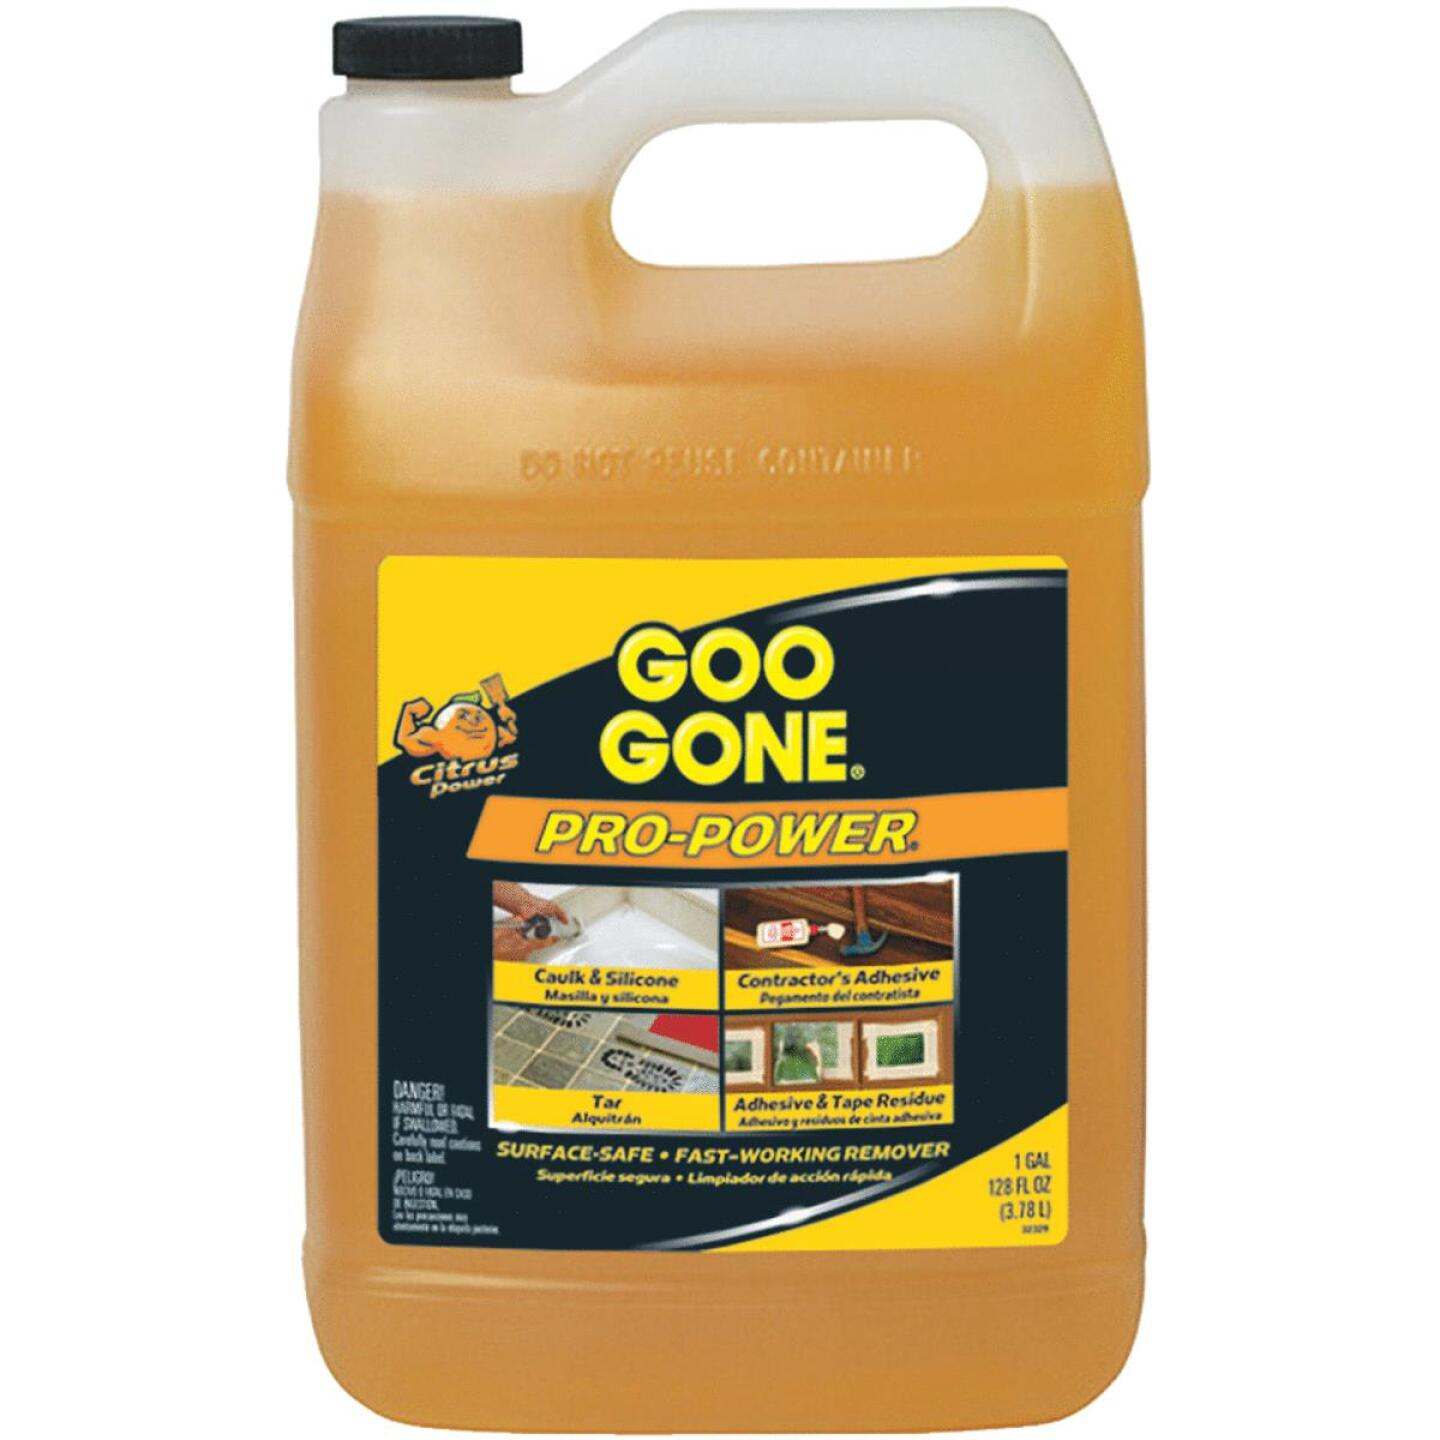 Goo Gone 1 Gal. Pro-Power Adhesive Remover Image 96